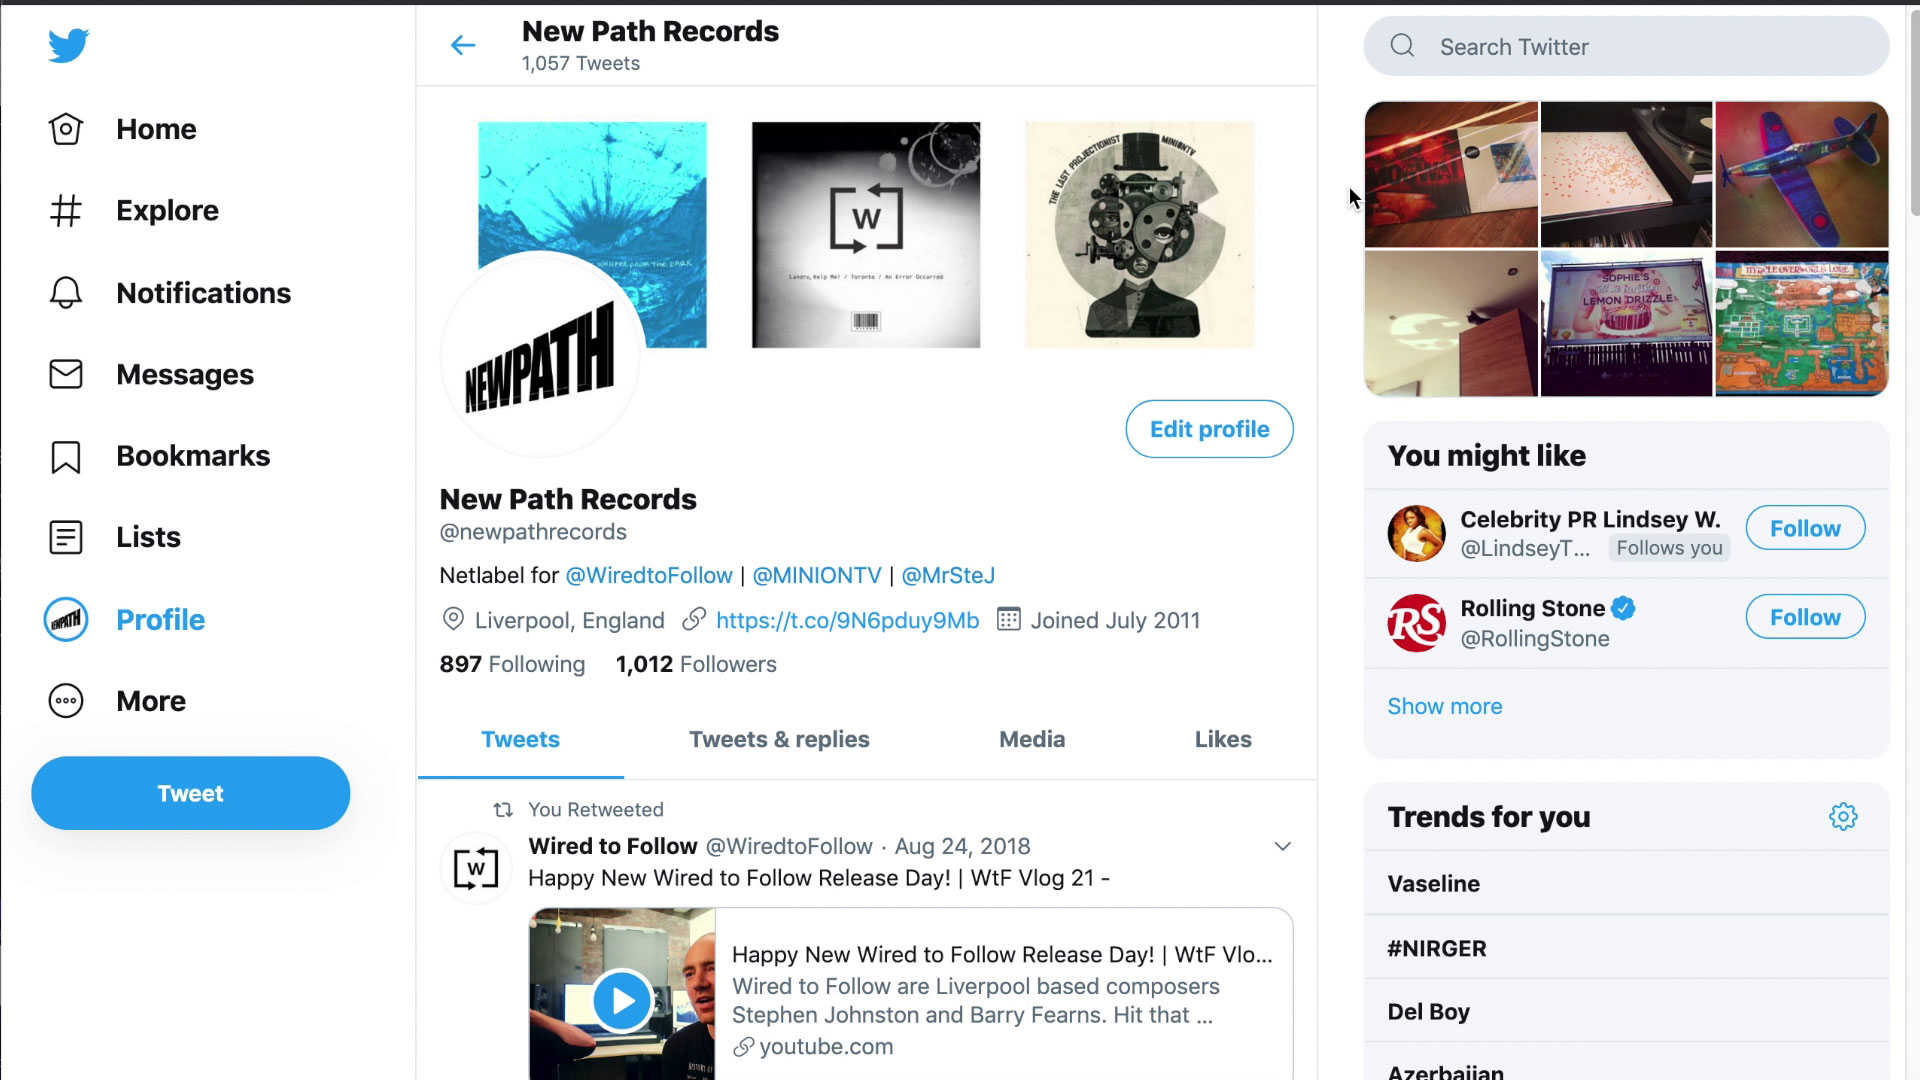 NewPath Twitter Profile with Images